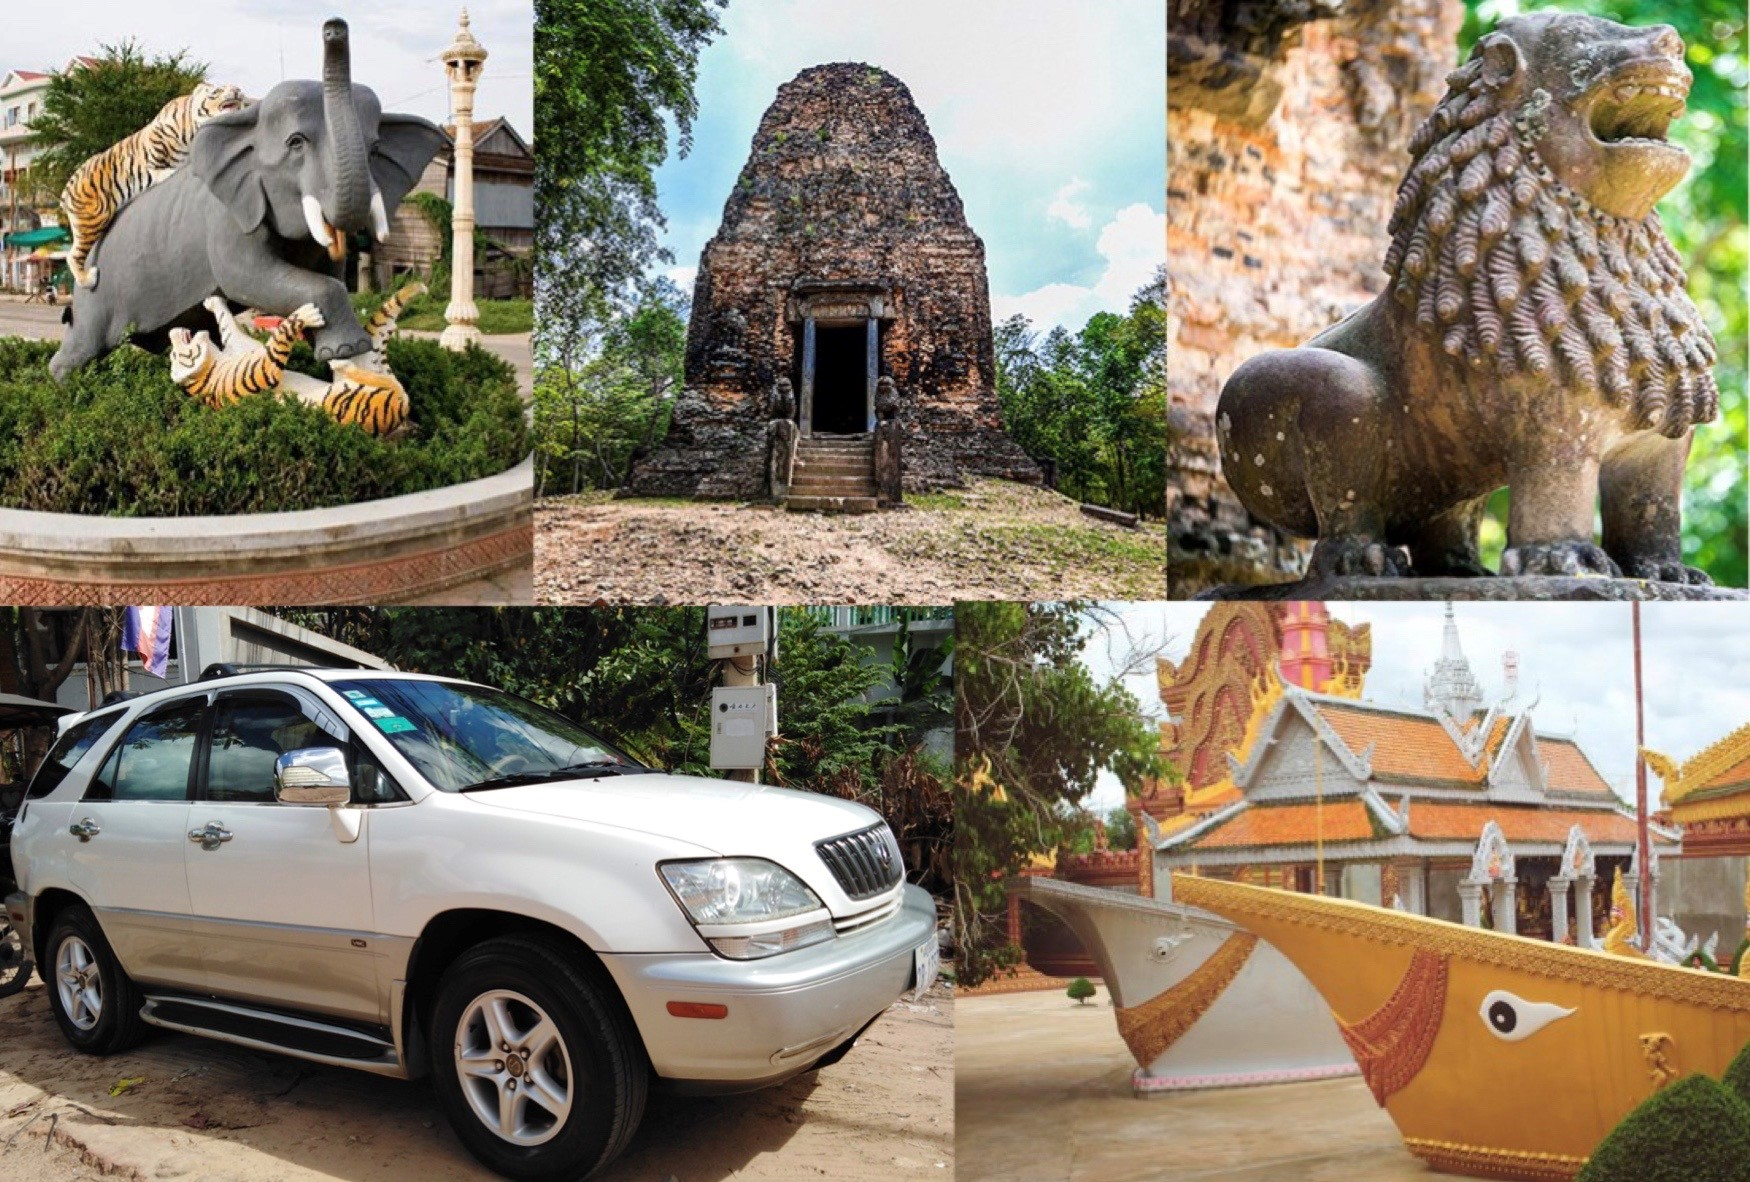 Ground Transfers, Private Taxi to Kampong Thom, Phnom Penh, Travels in Cambodia